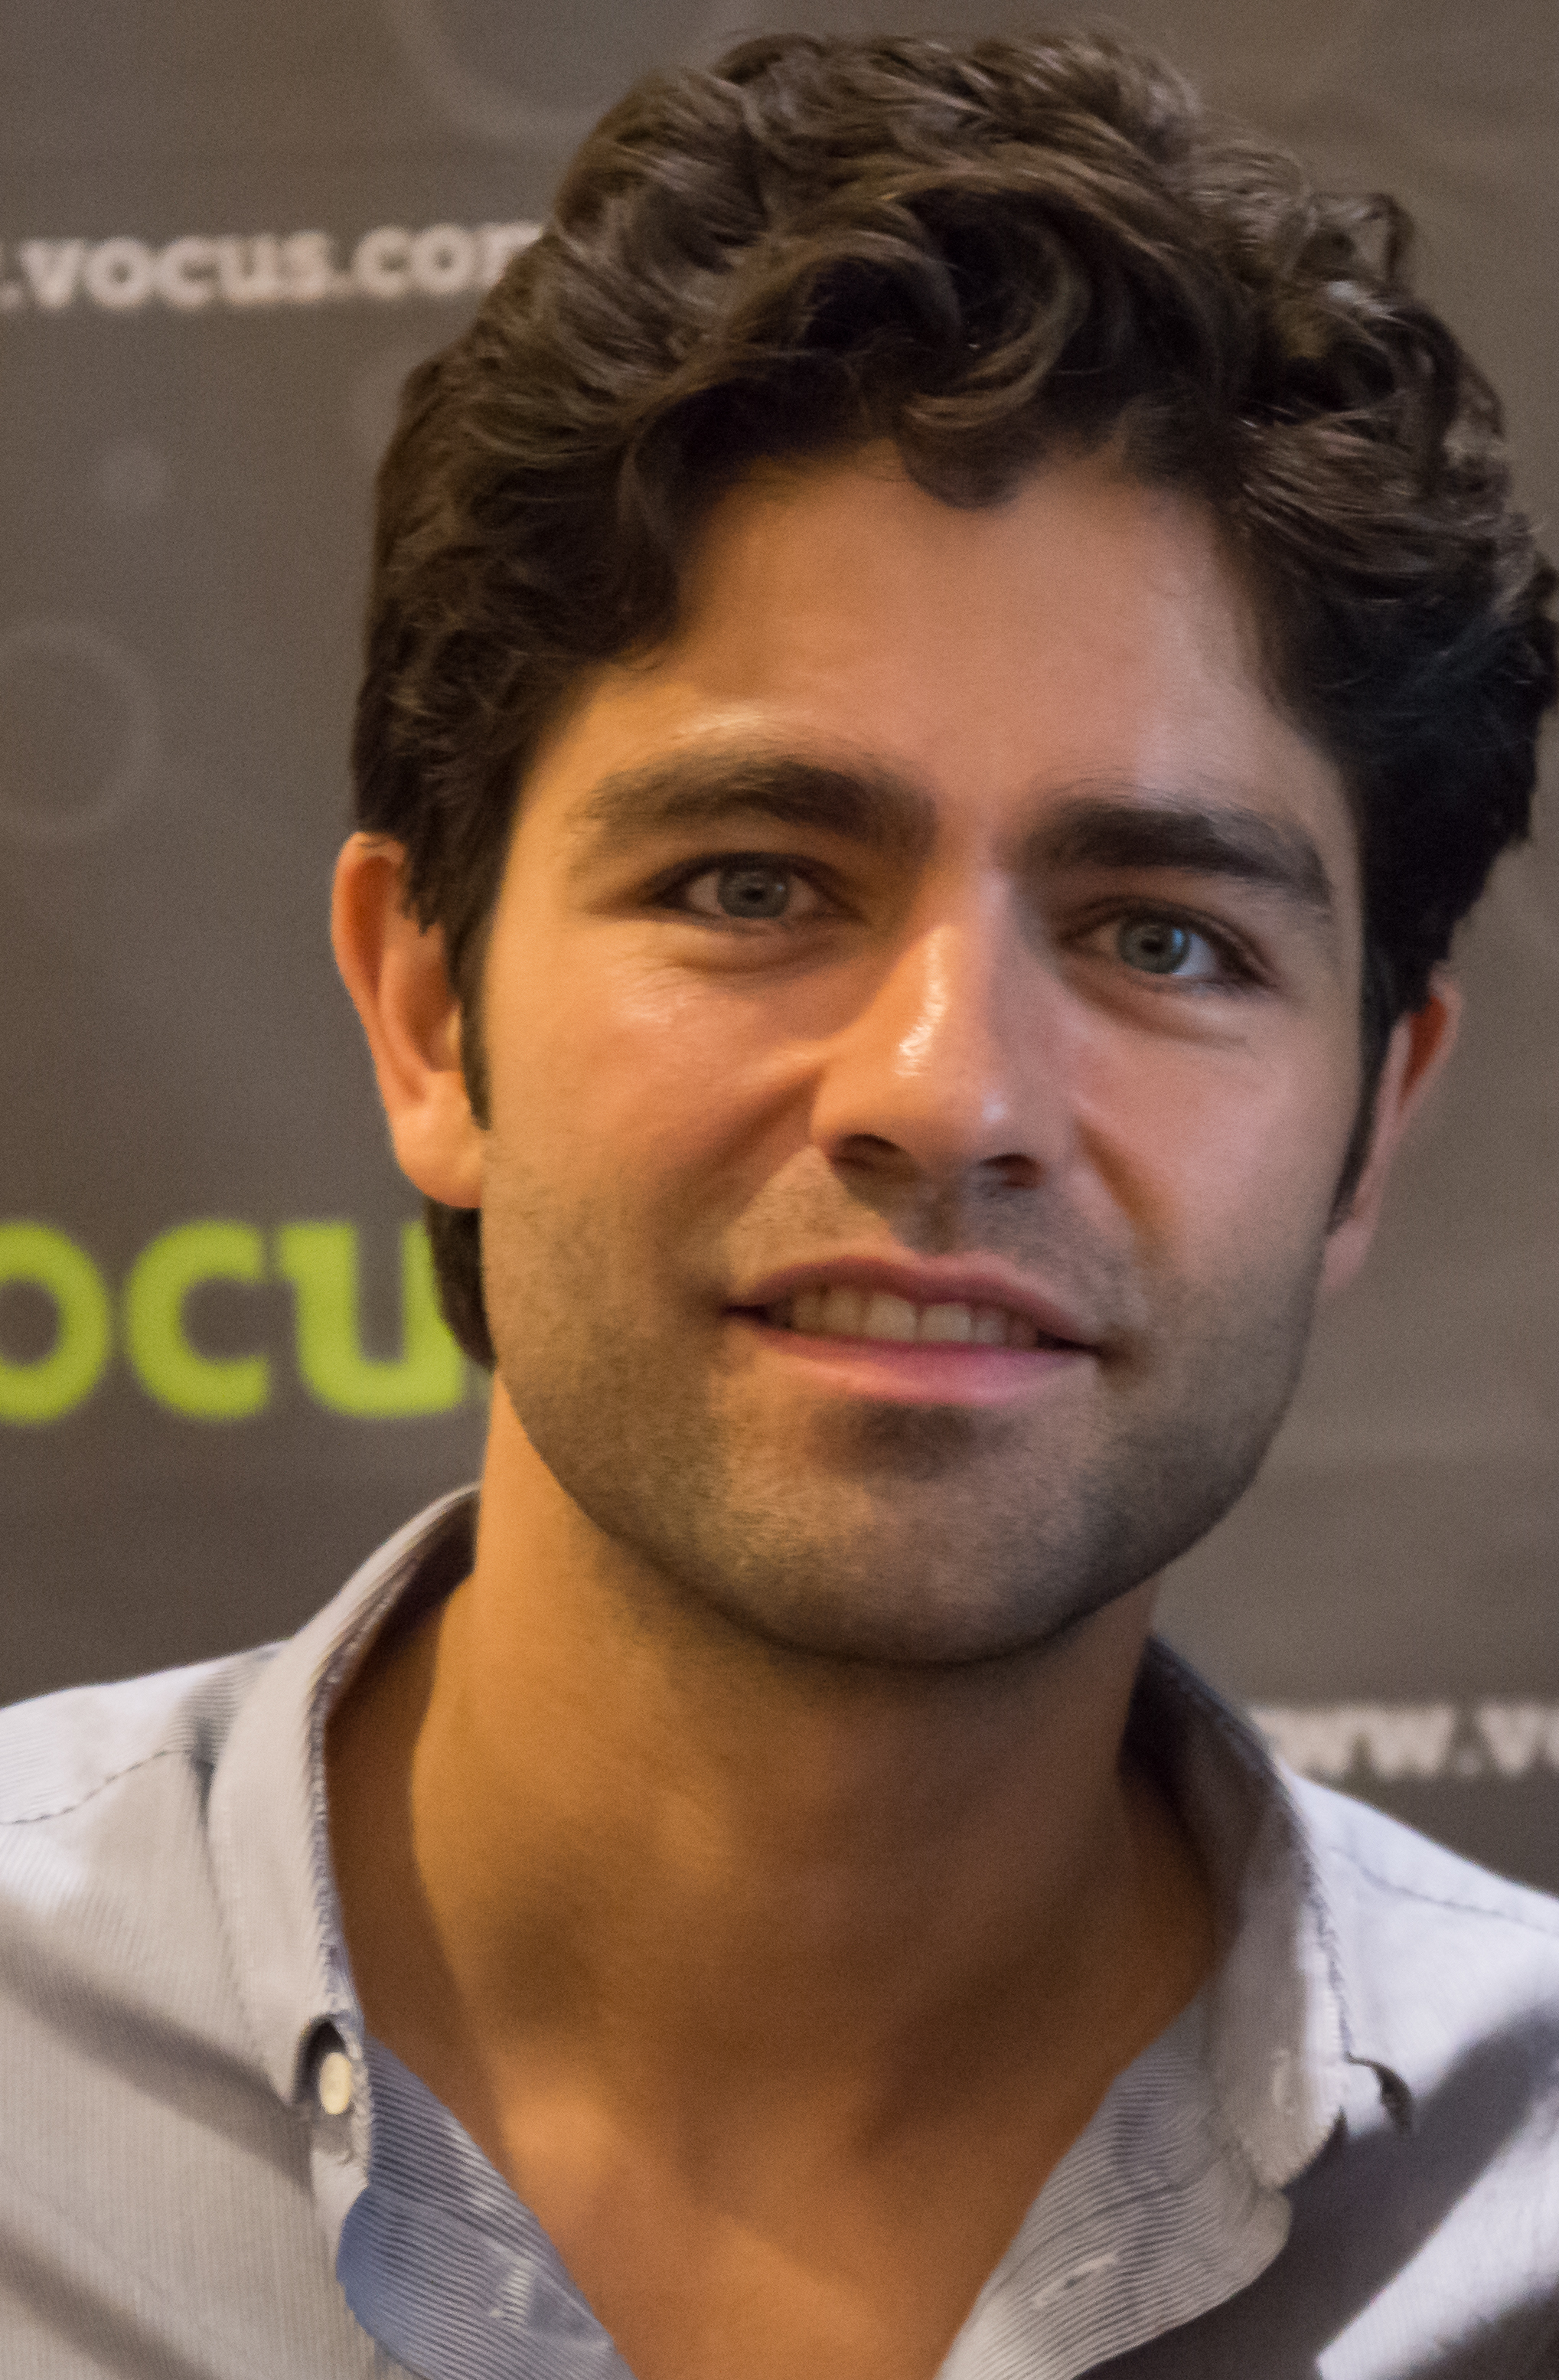 The 42-year old son of father John Dunbar and mother Karesse Grenier Adrian Grenier in 2019 photo. Adrian Grenier earned a  million dollar salary - leaving the net worth at 15 million in 2019